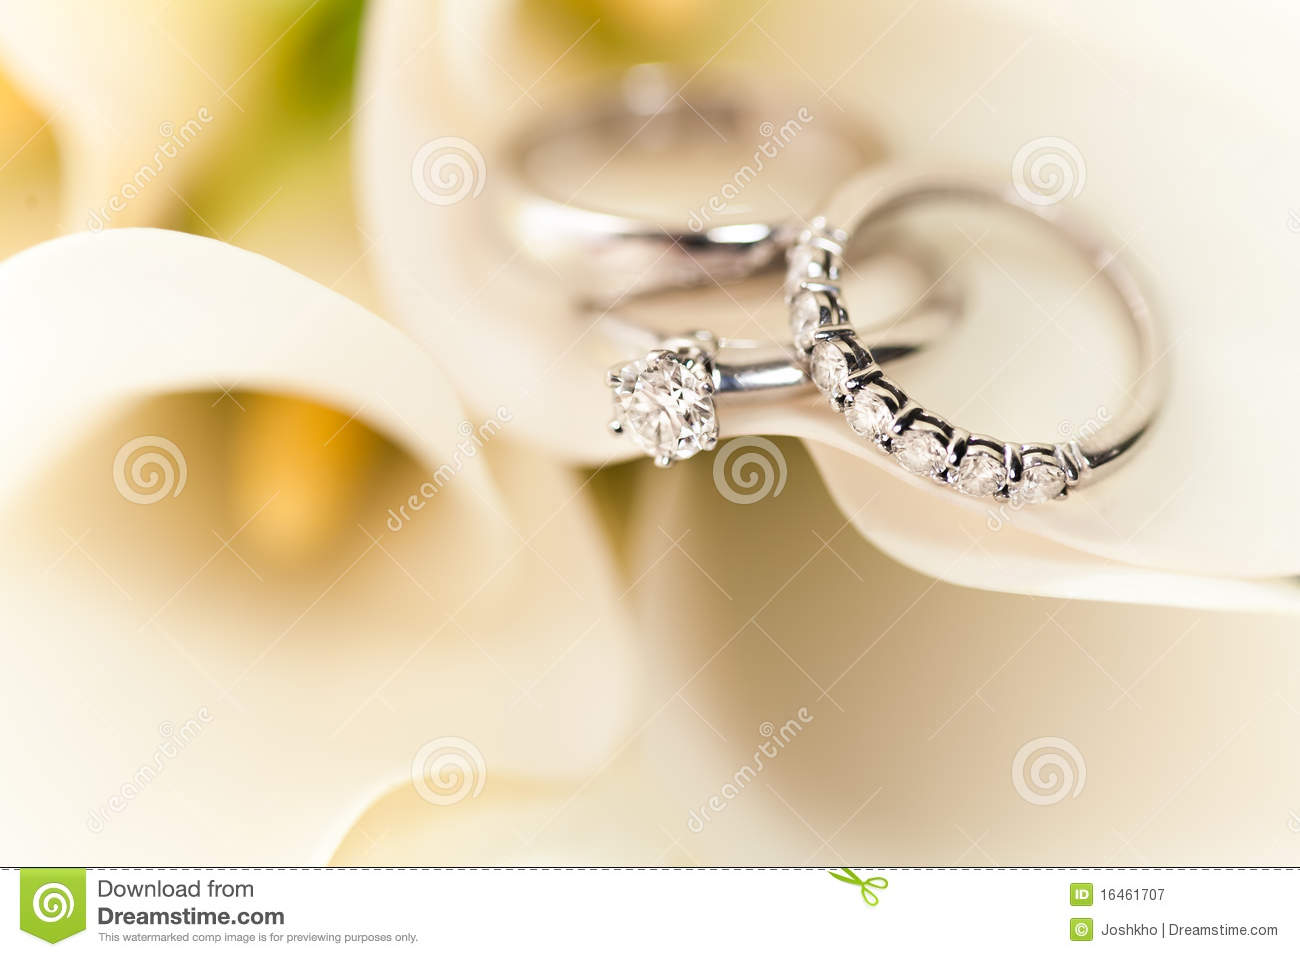 wedding rings on white flowers royalty free stock